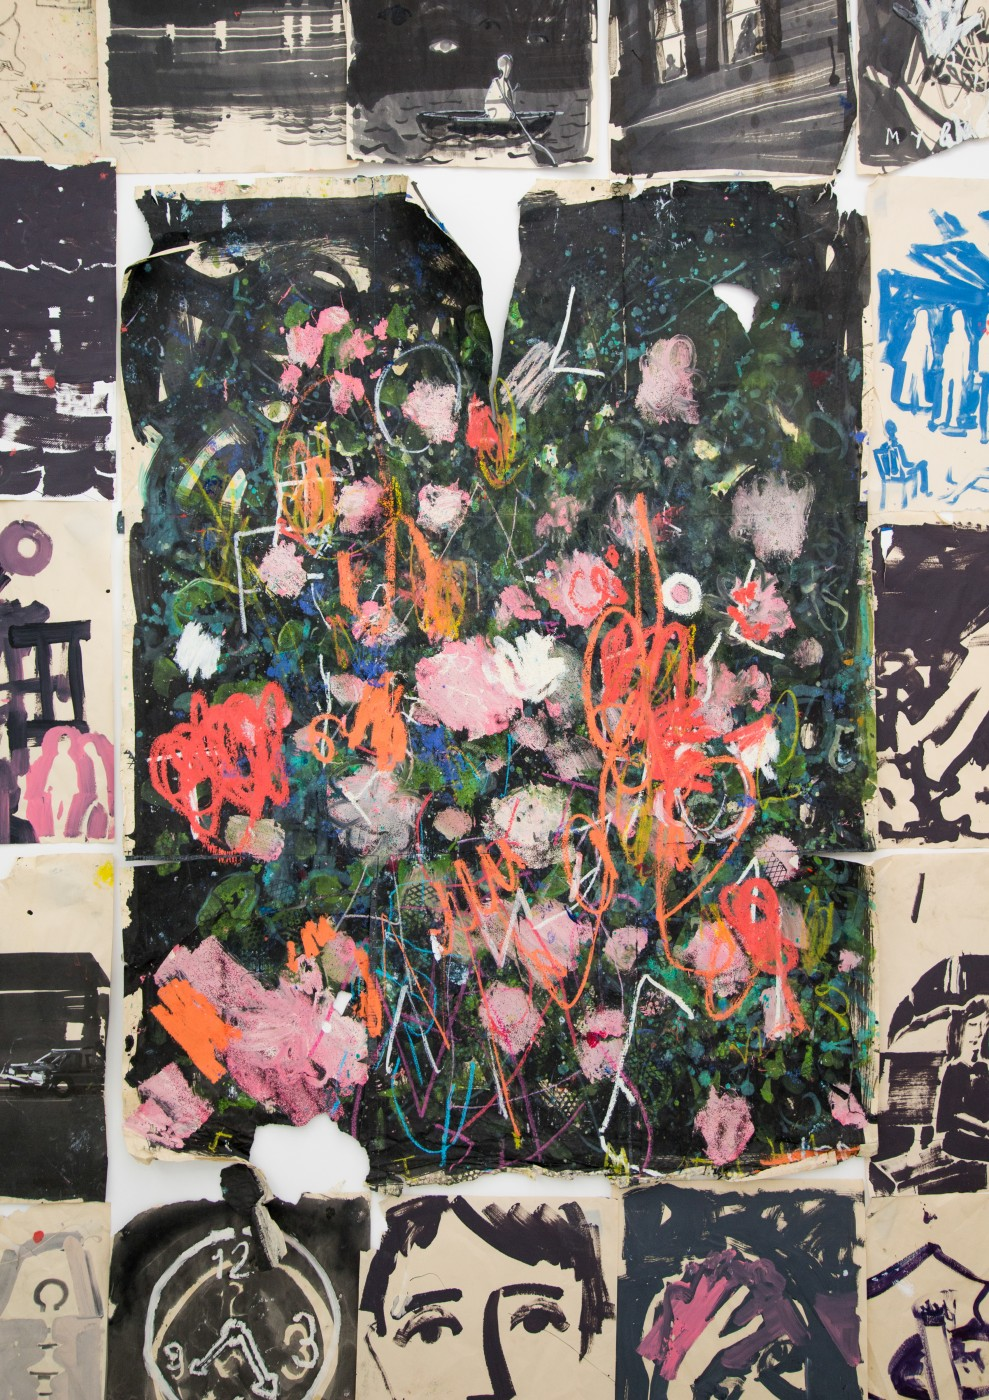 WALLFLOWERS, MALFLOWERS  Untitled , 2018  Oil paint, oil stick, acrylic, ink, small beads on paper  180 x 133 cm / 71 x 52 in  Nathan Zeidman